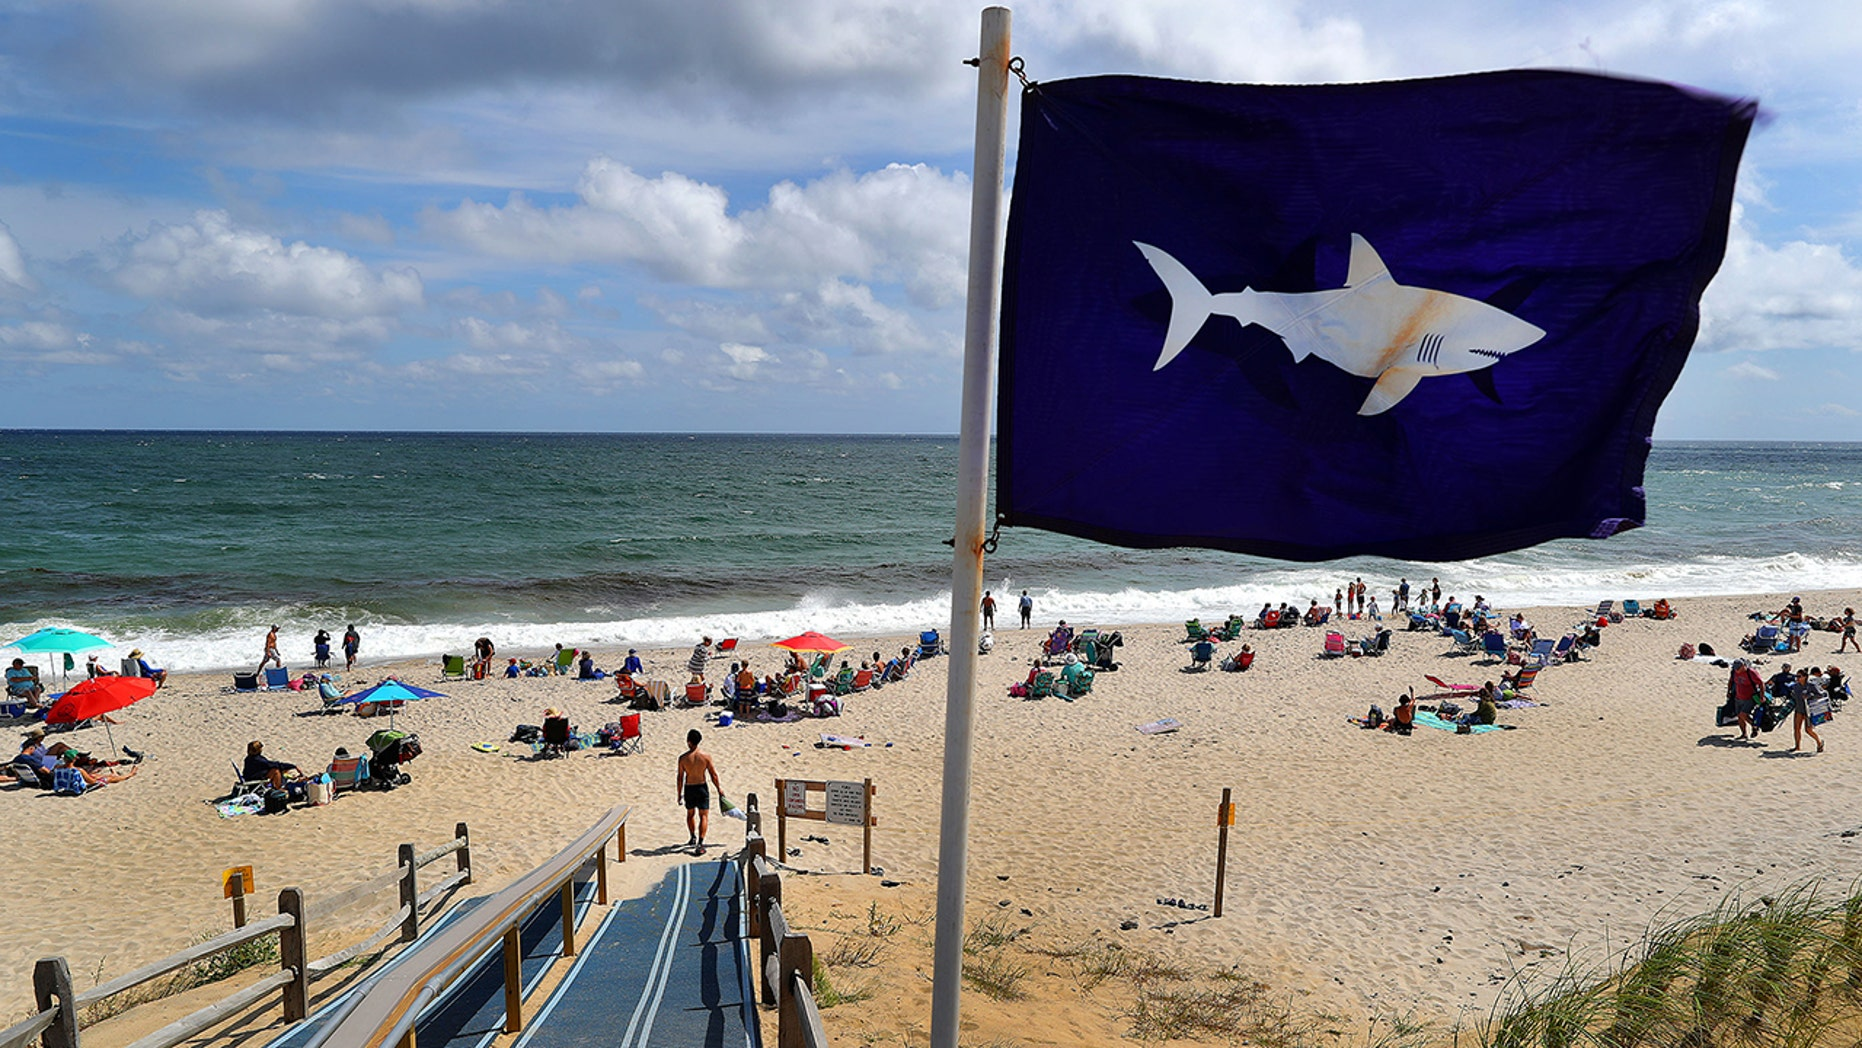 A flag warning Cape Cod visitors of sharks blows in the wind at an entrance point to Nauset Beach in Orleans, Mass., on Aug. 31, 2018.